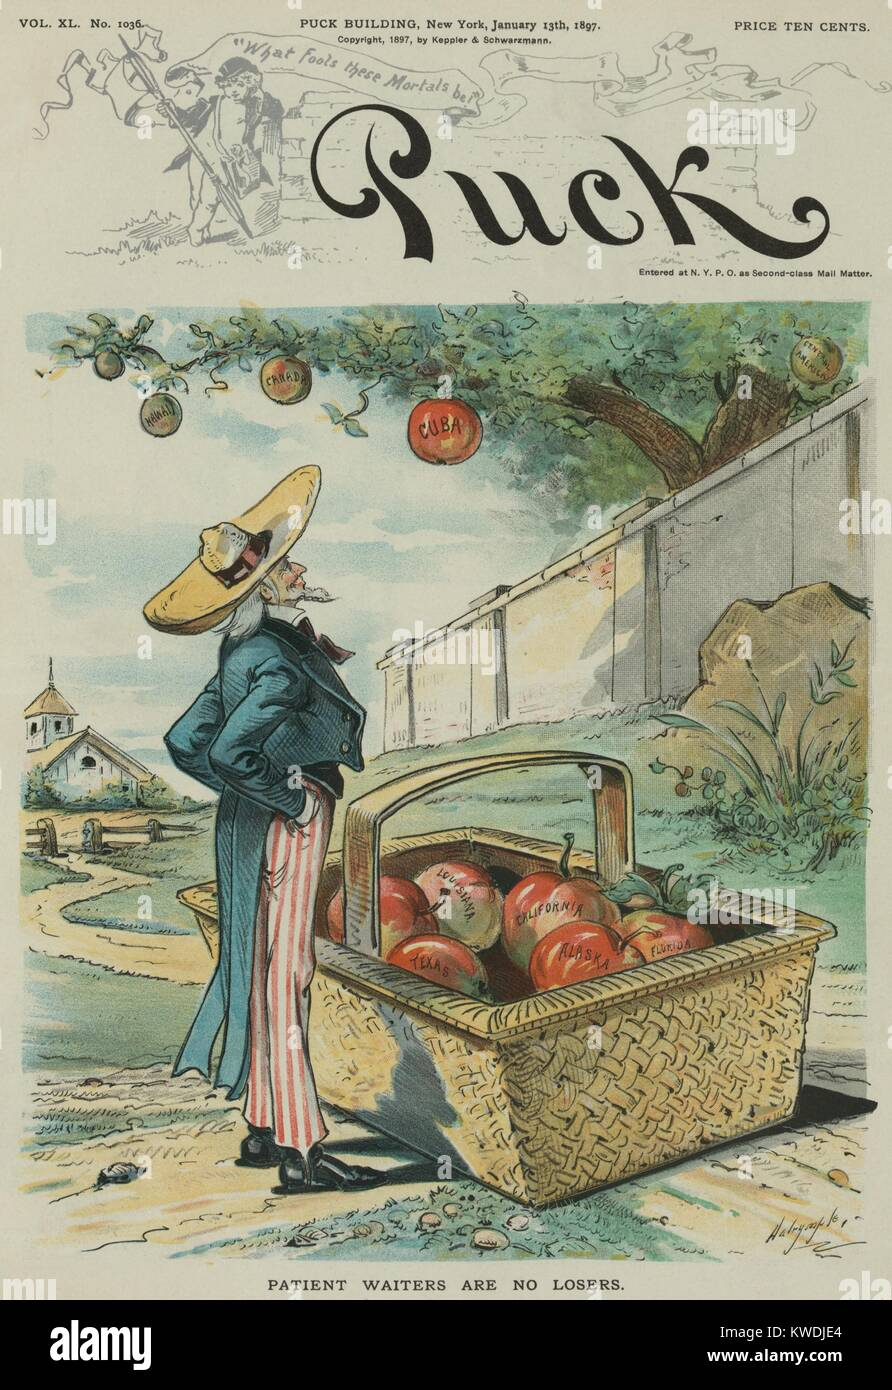 PATIENT WAITER ARE NO LOSERS, political cartoon from Puck Magazine, Jan. 13, 1897. Uncle Sam waits beneath an apple - Stock Image